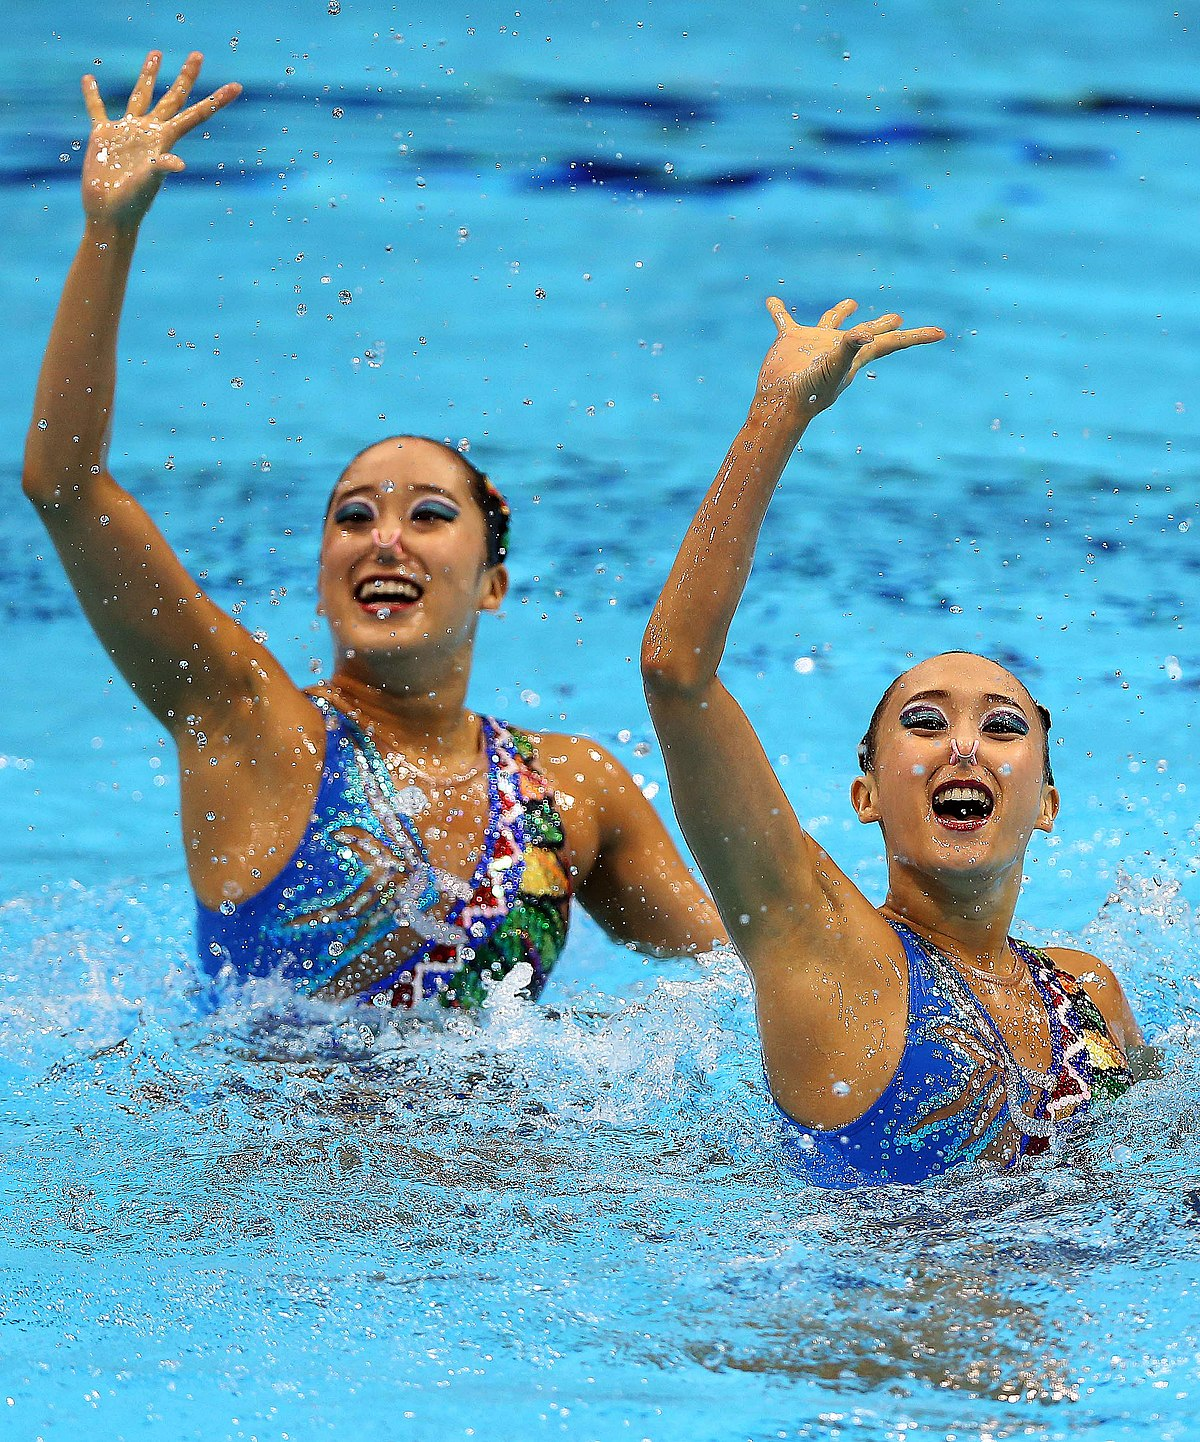 synchronized swimming at the 2012 summer olympics